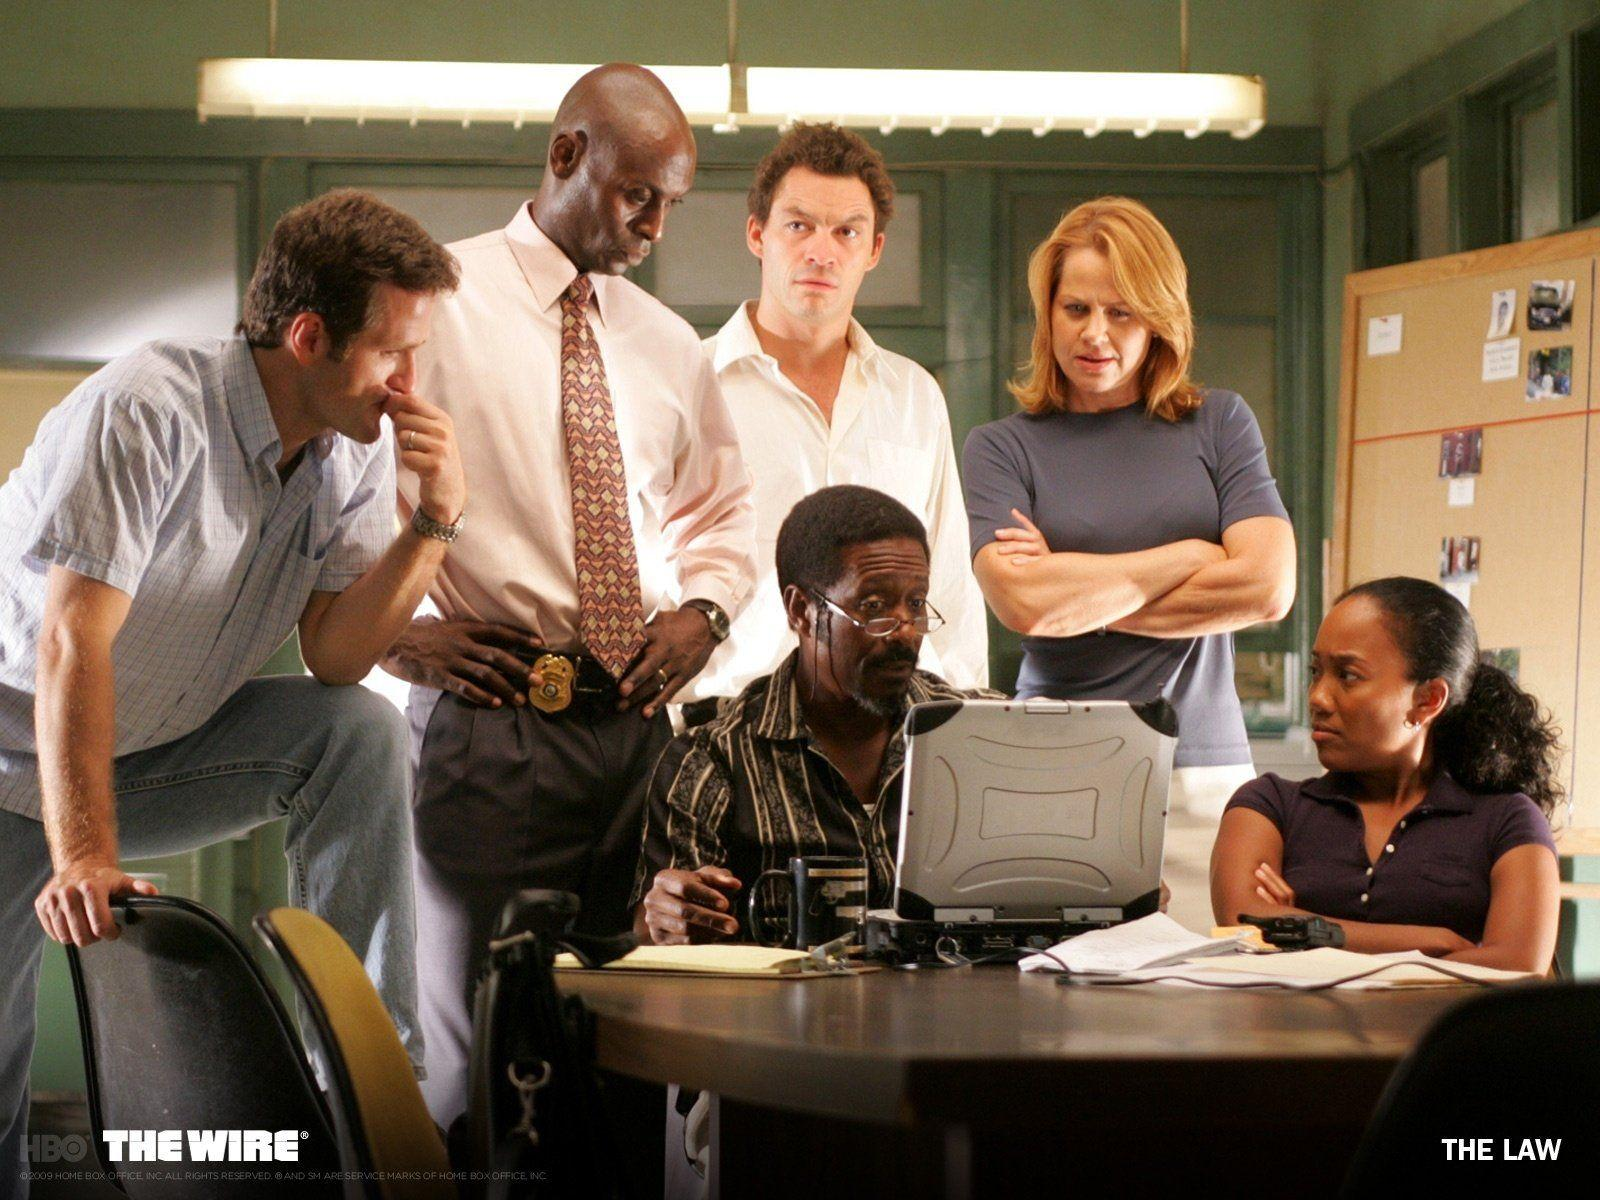 the wire season 1 Ranking: Every Season of The Wire from Worst to Best